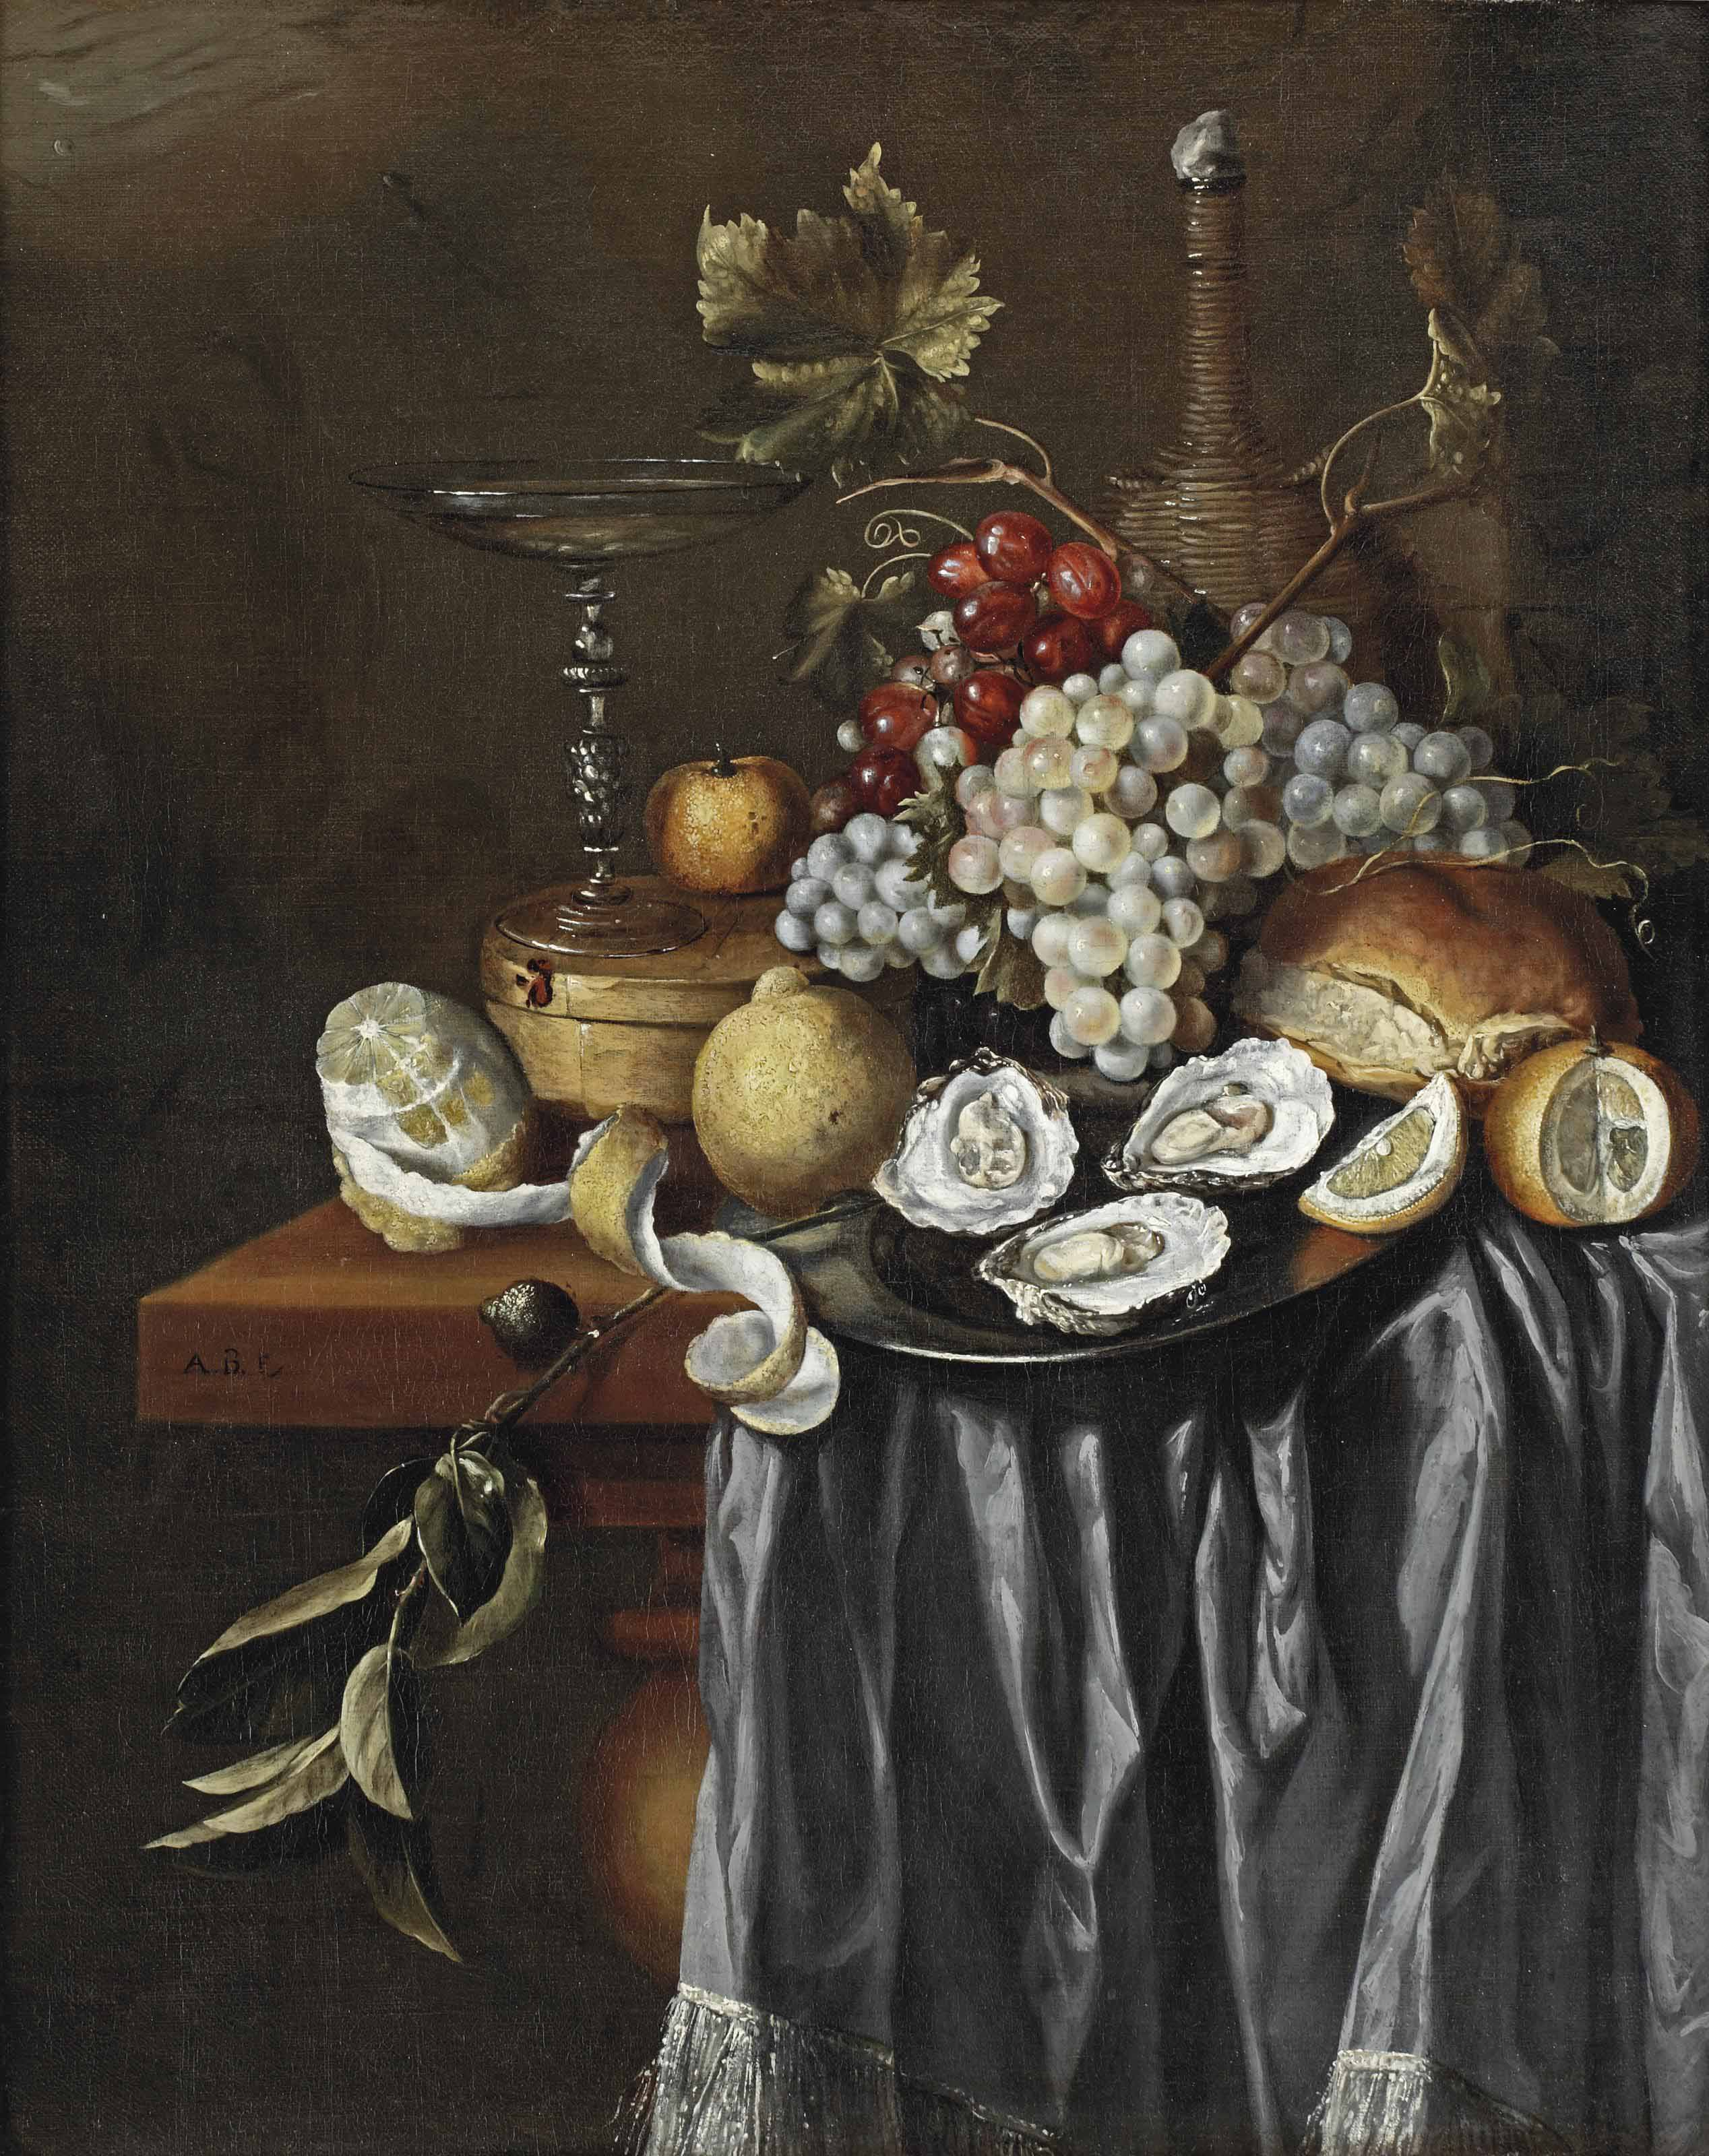 A peeled lemon, a Venetian glass, a clementine, blue and white grapes, lemons, oysters on a pewter plate, and a jug, all on a partially draped table